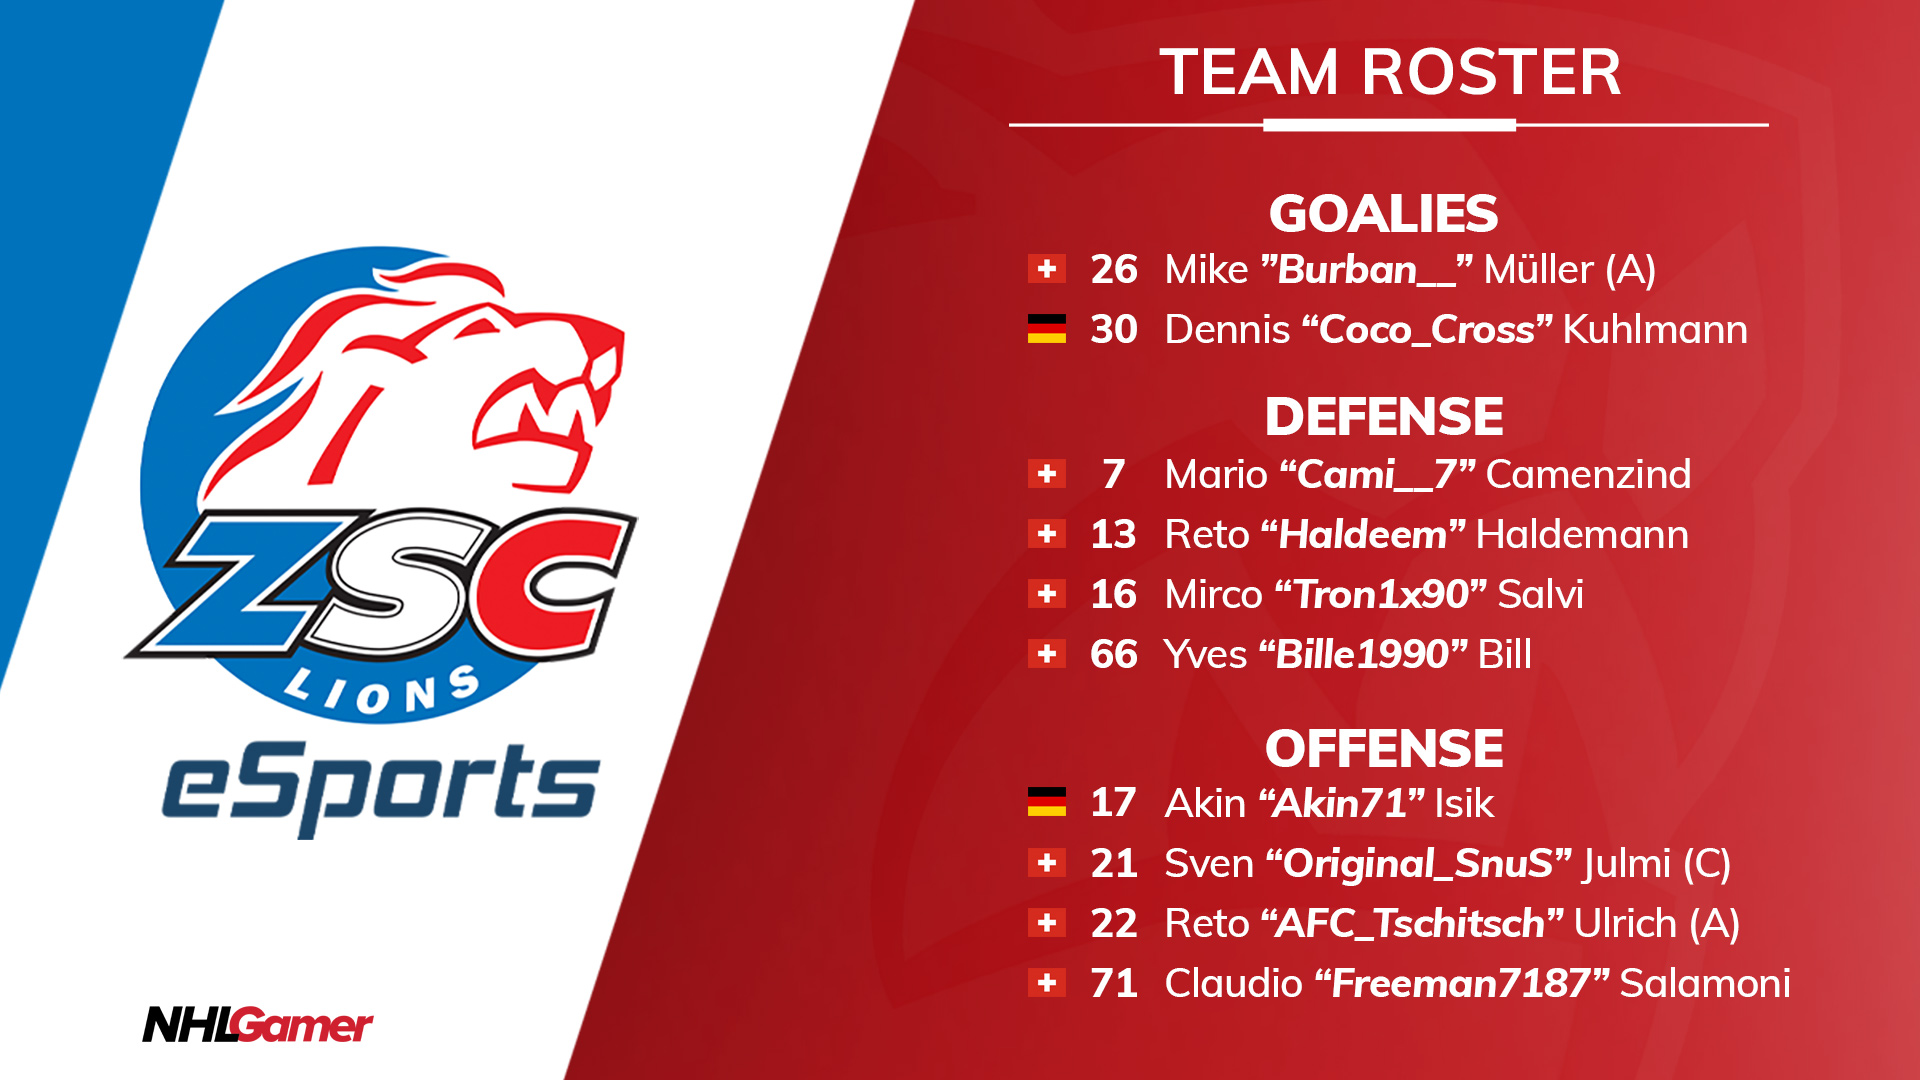 ZSC_Lions_eSports_Roster.jpg